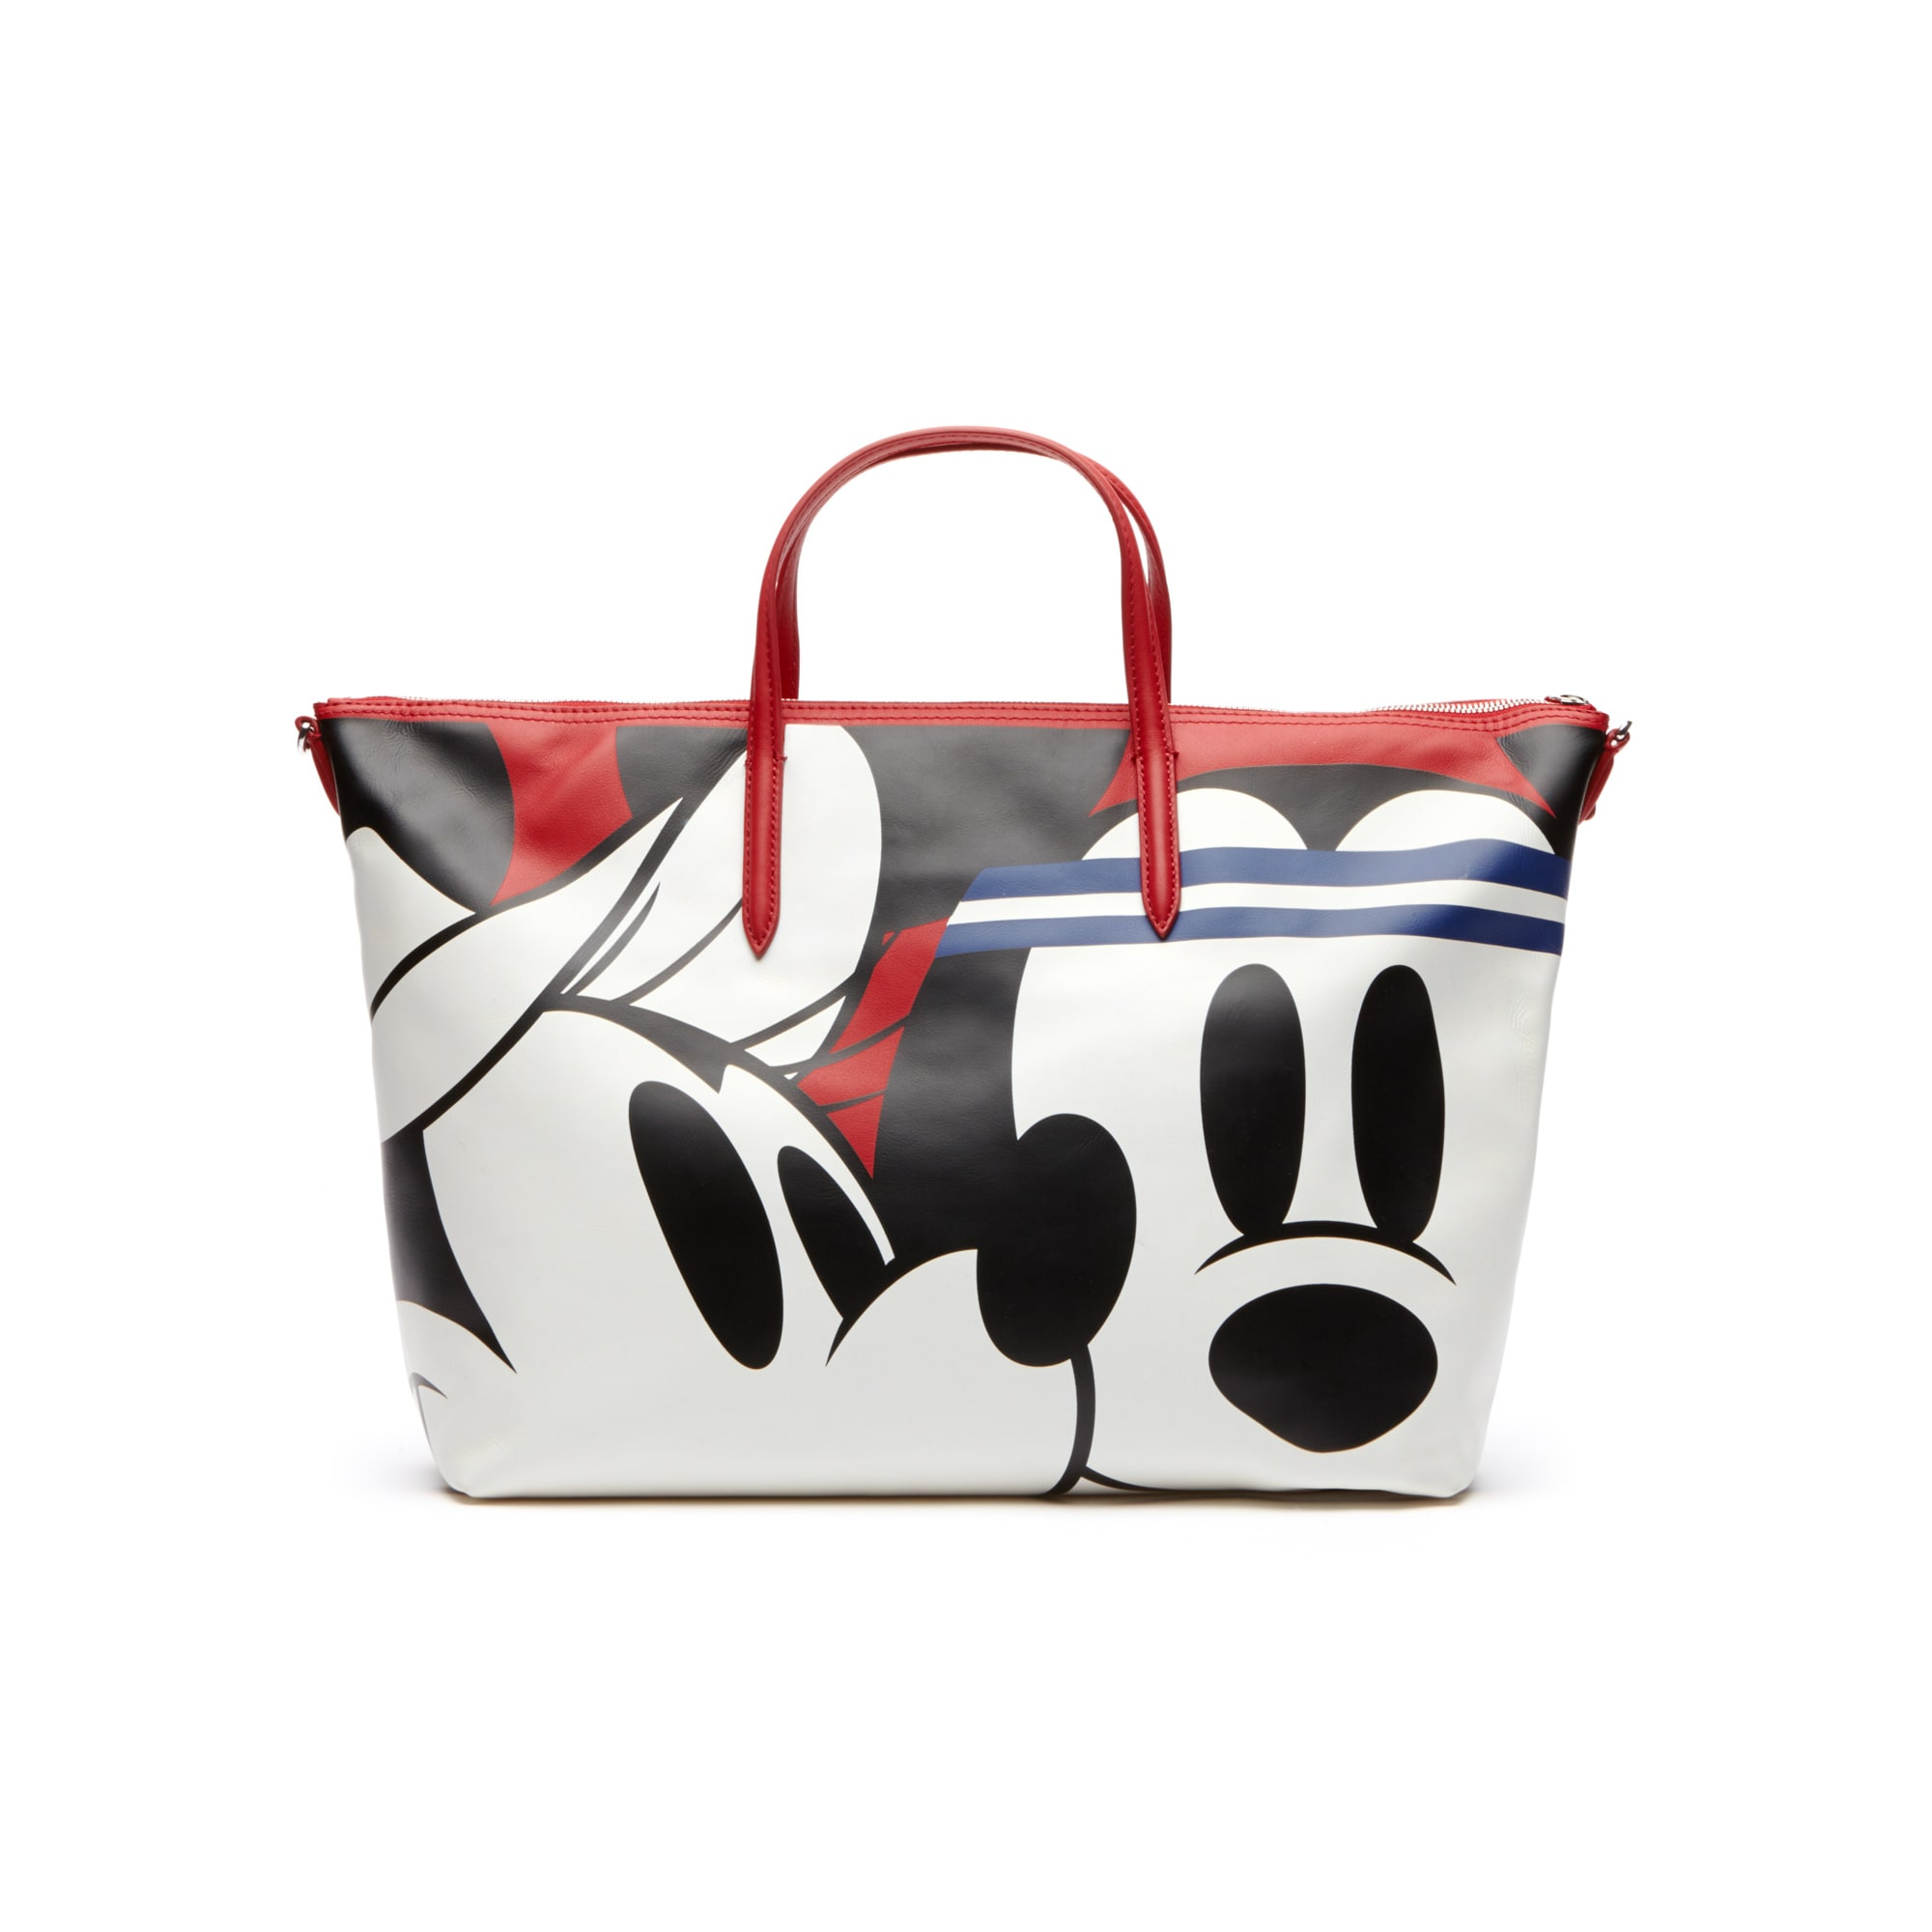 Damen DISNEY HOLIDAY COLLECTOR Tote Bag mit Print